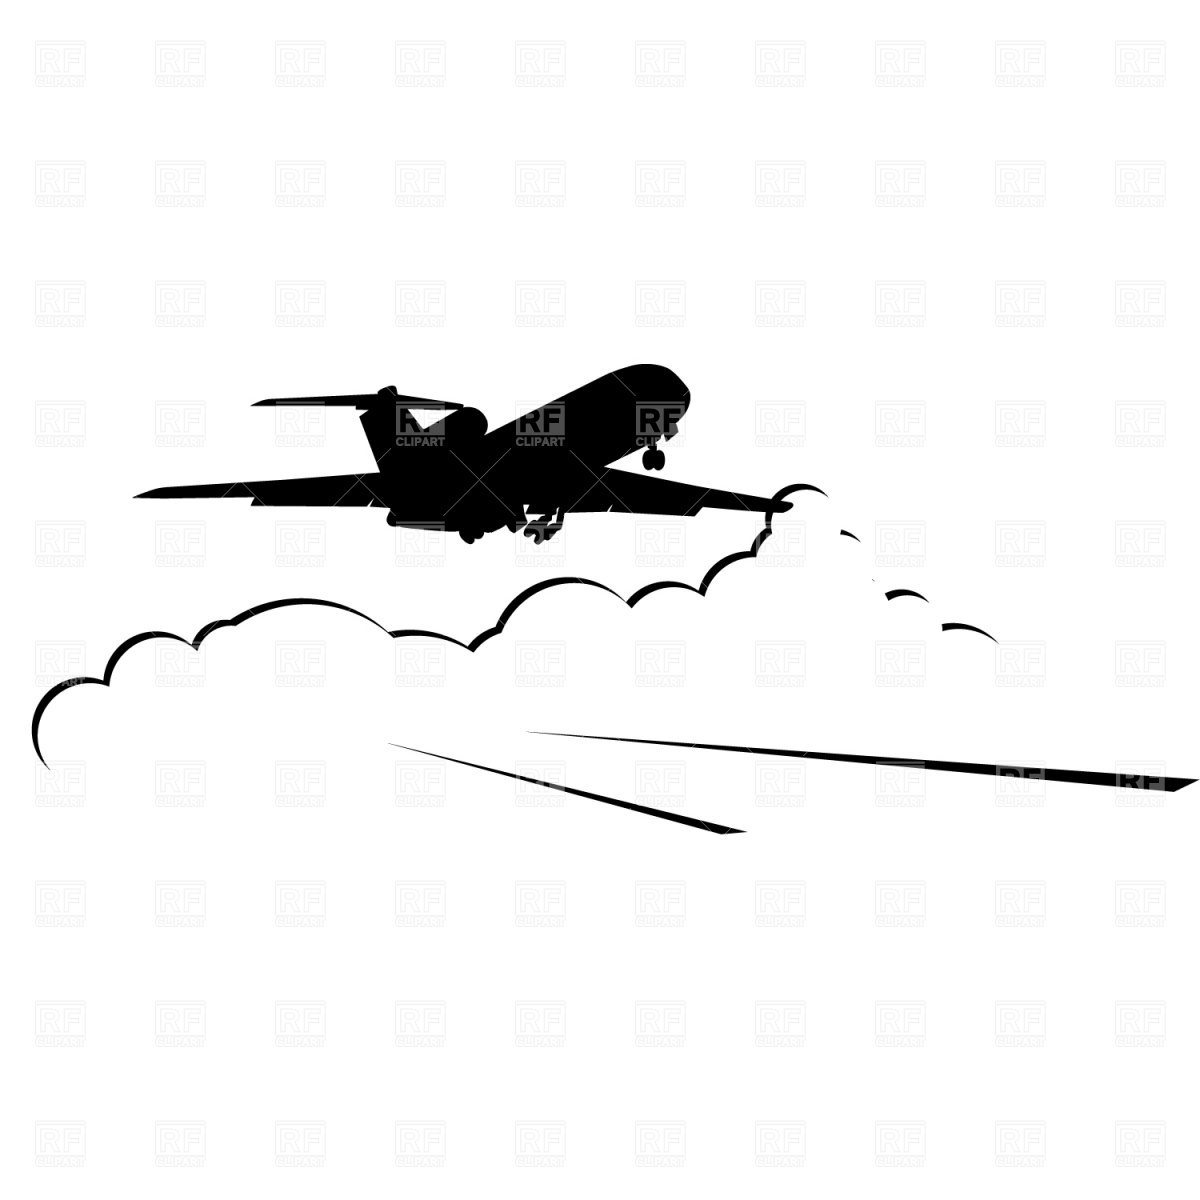 Snoopy clipart airplane Jet Plane Jet Clipart 10654